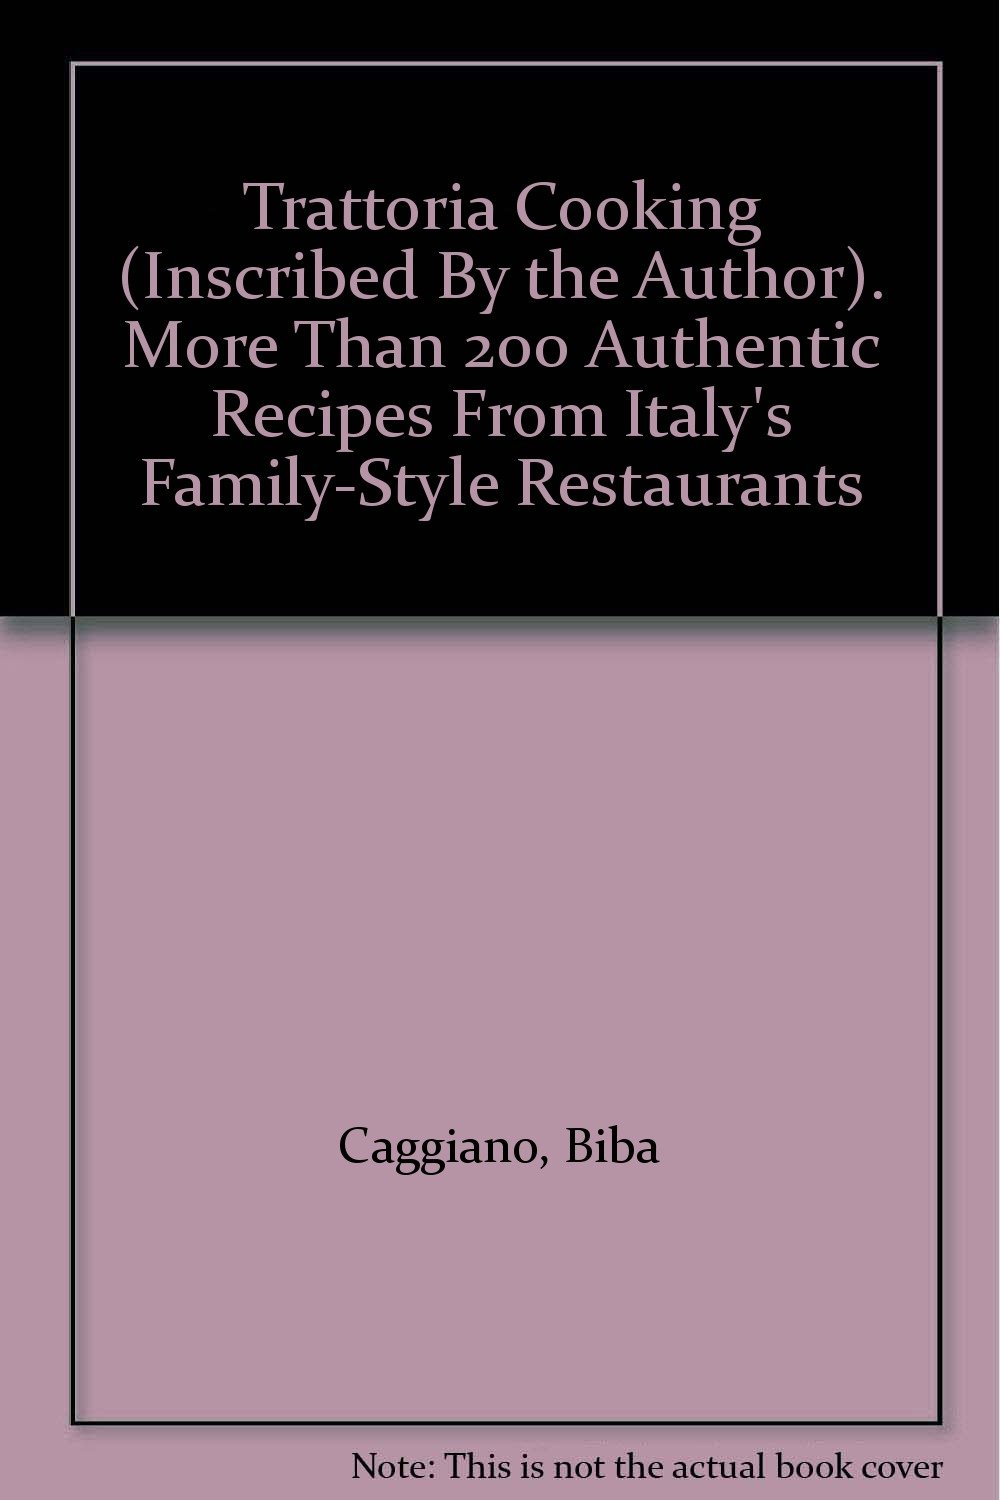 Trattoria Cooking (Inscribed By the Author). More Than 200 Authentic Recipes  From Italy's Family-Style Restaurants: Amazon.com: Books